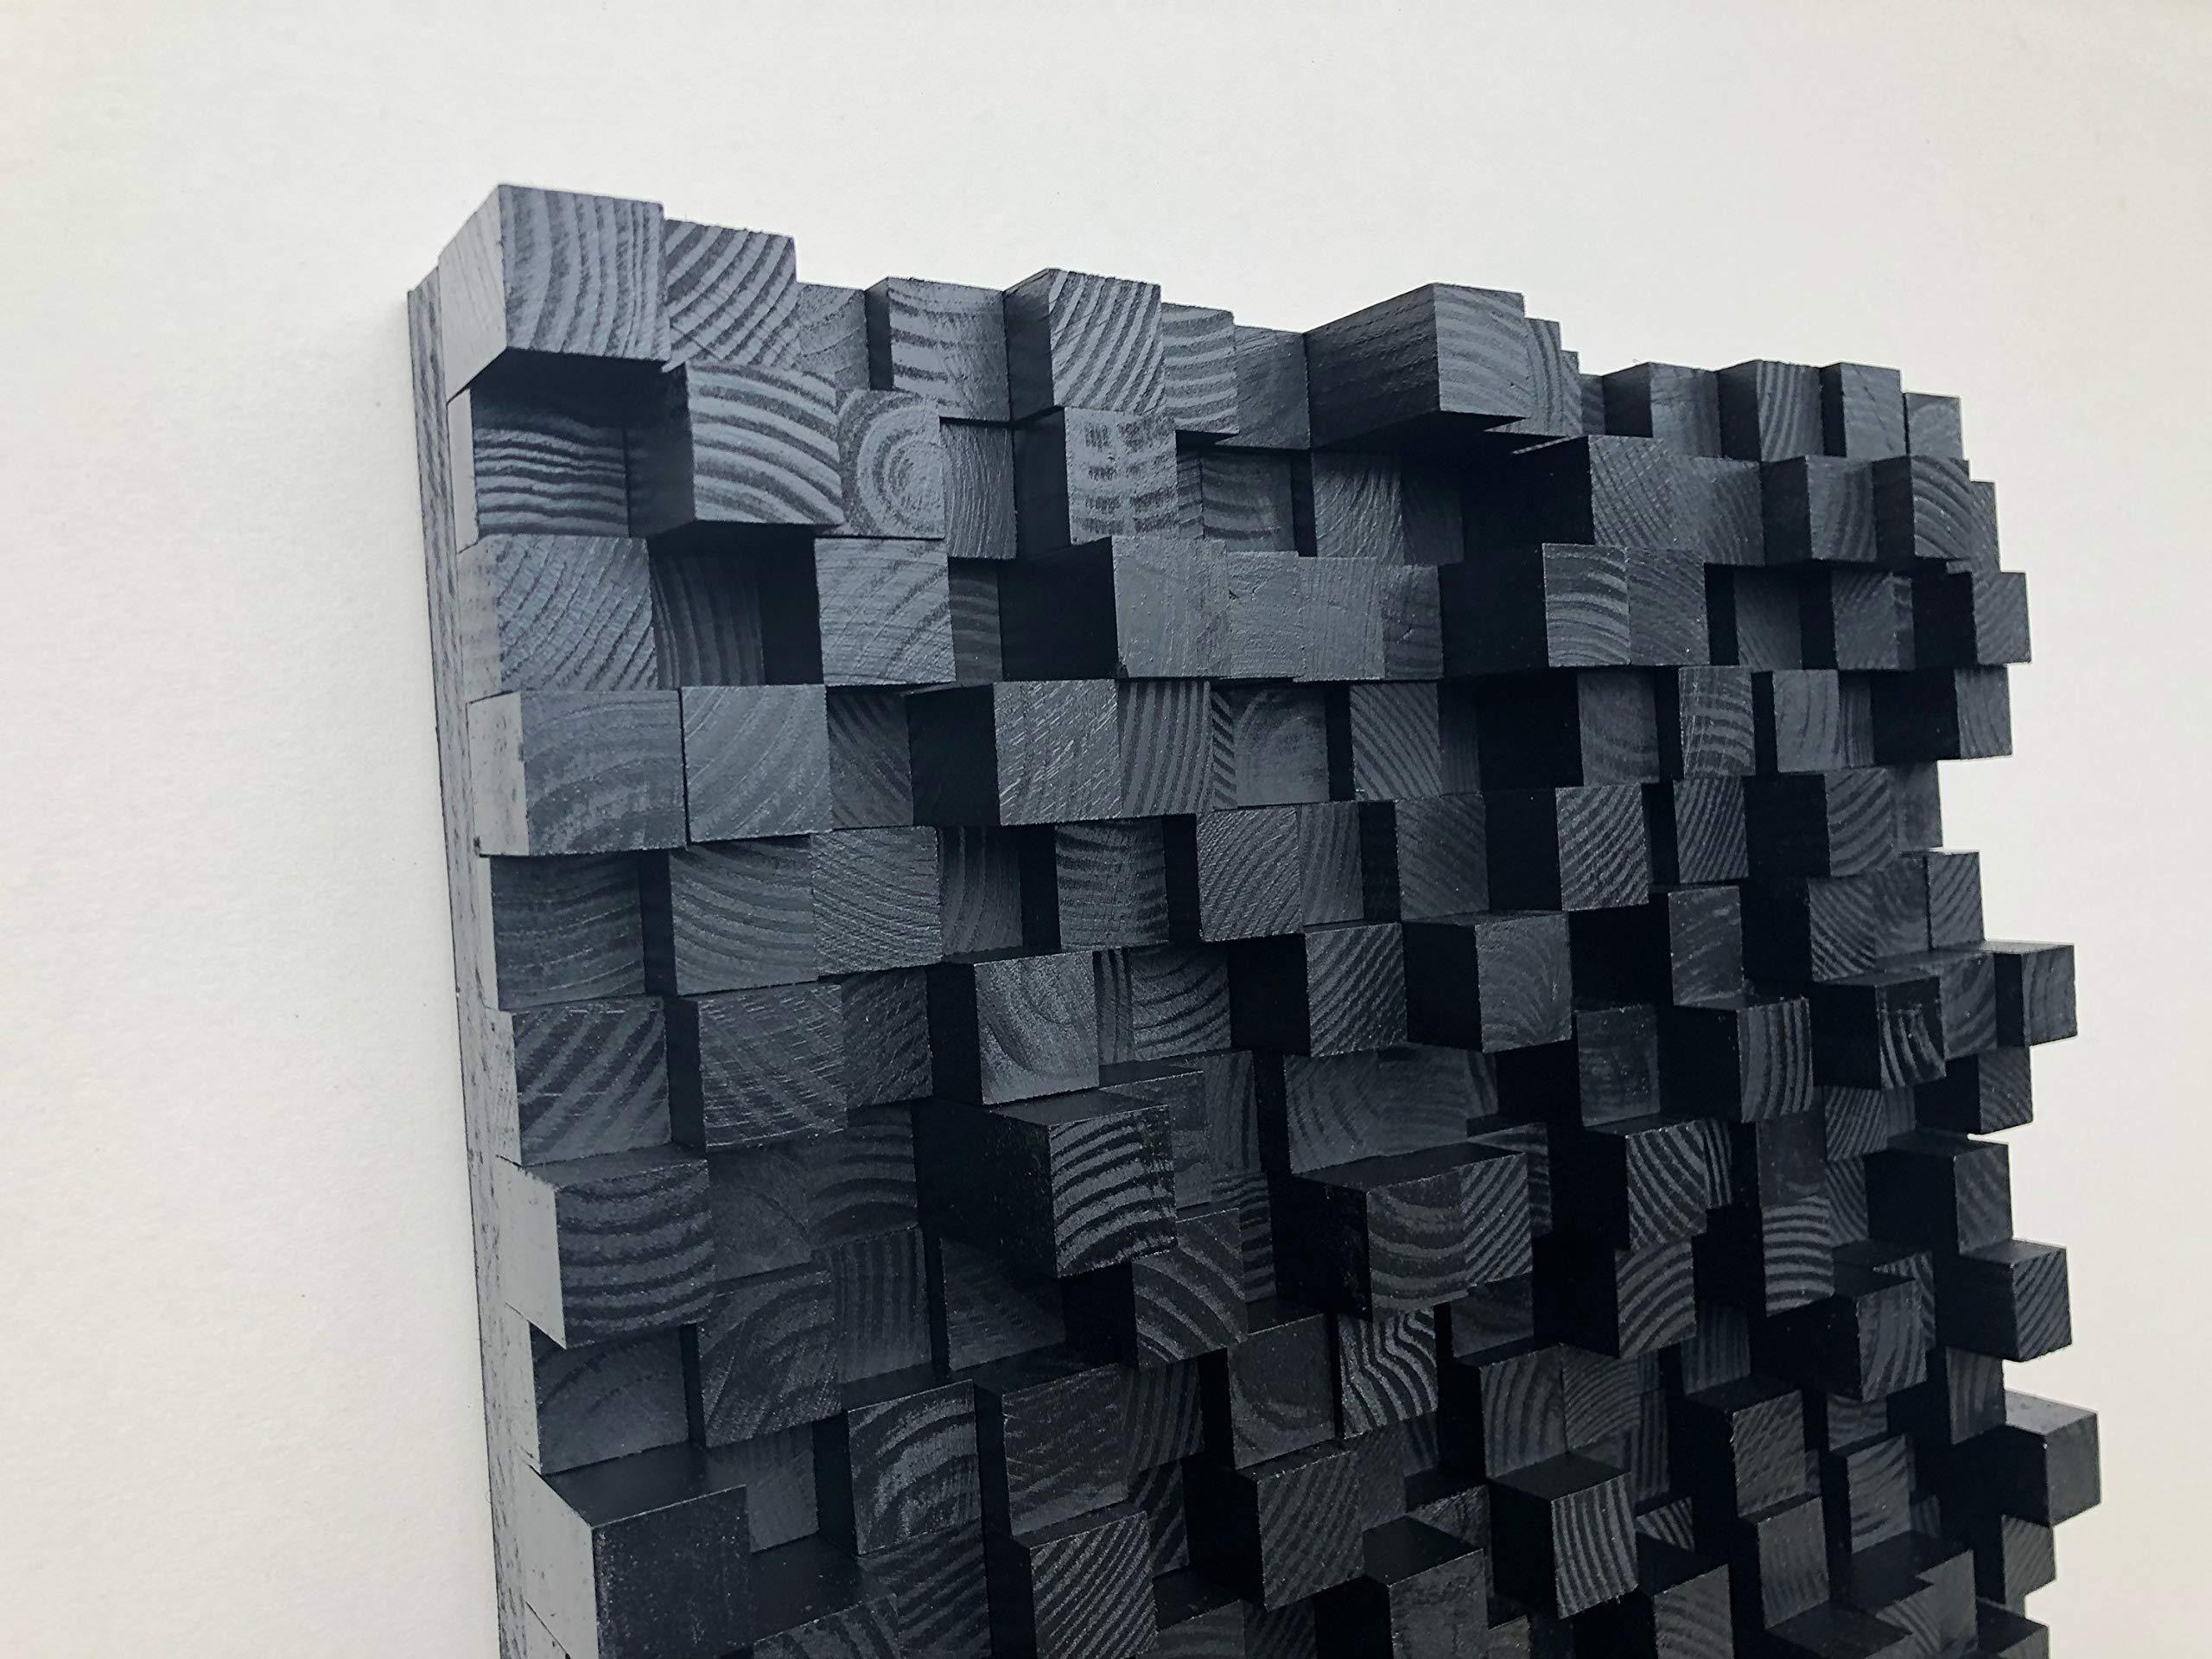 Sound Diffuser - Acoustic Diffusion Panel - Soundproofing - Wood - Wall Art- sound diffusor by Pixel wood art (Image #3)